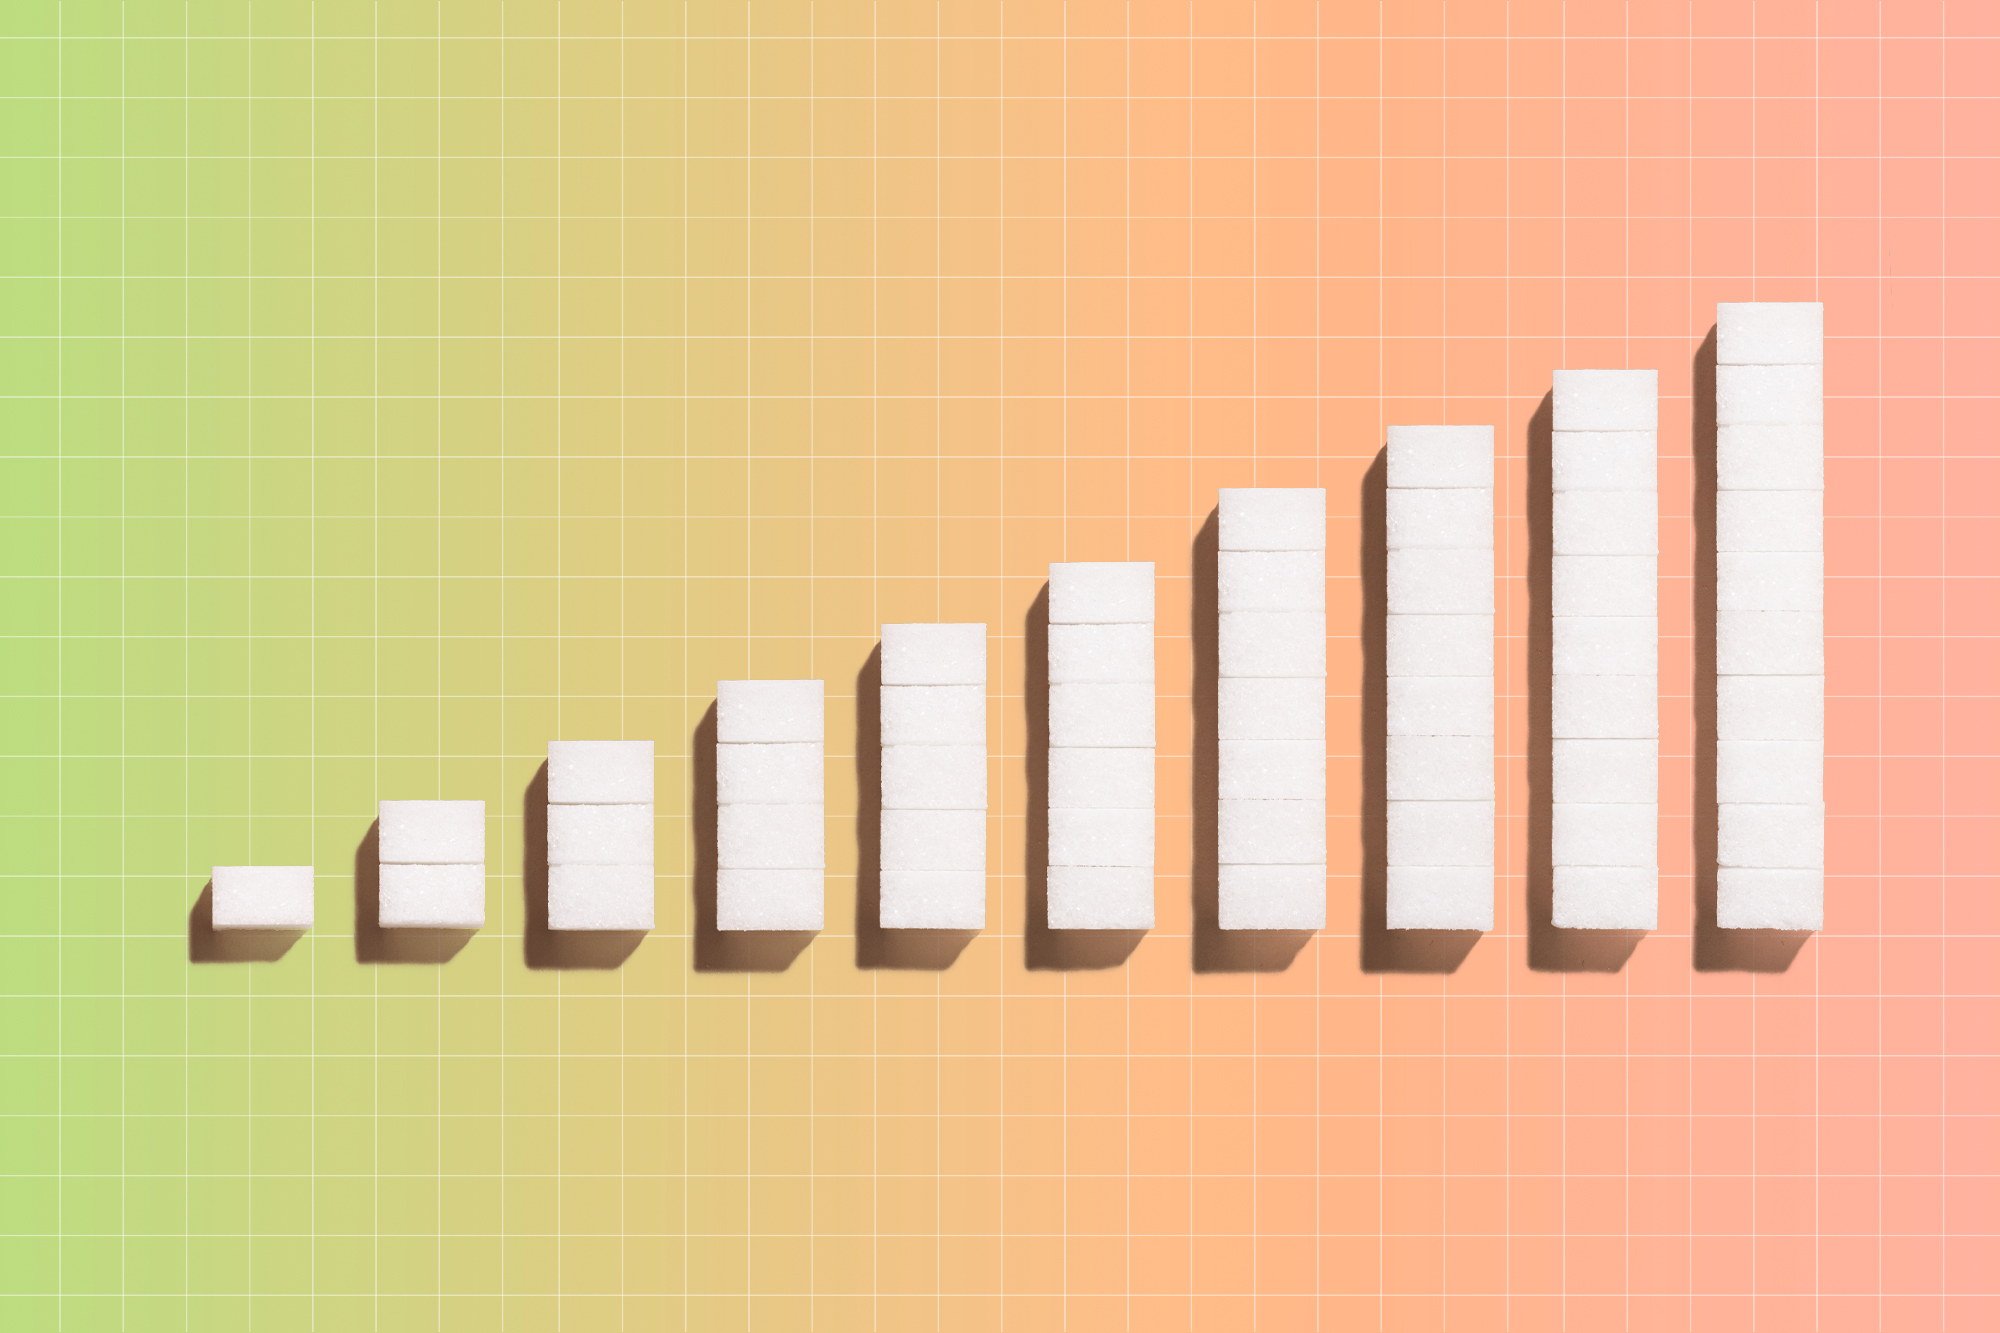 Sugar cubes in a increasing bar graph with a color gradient in the background